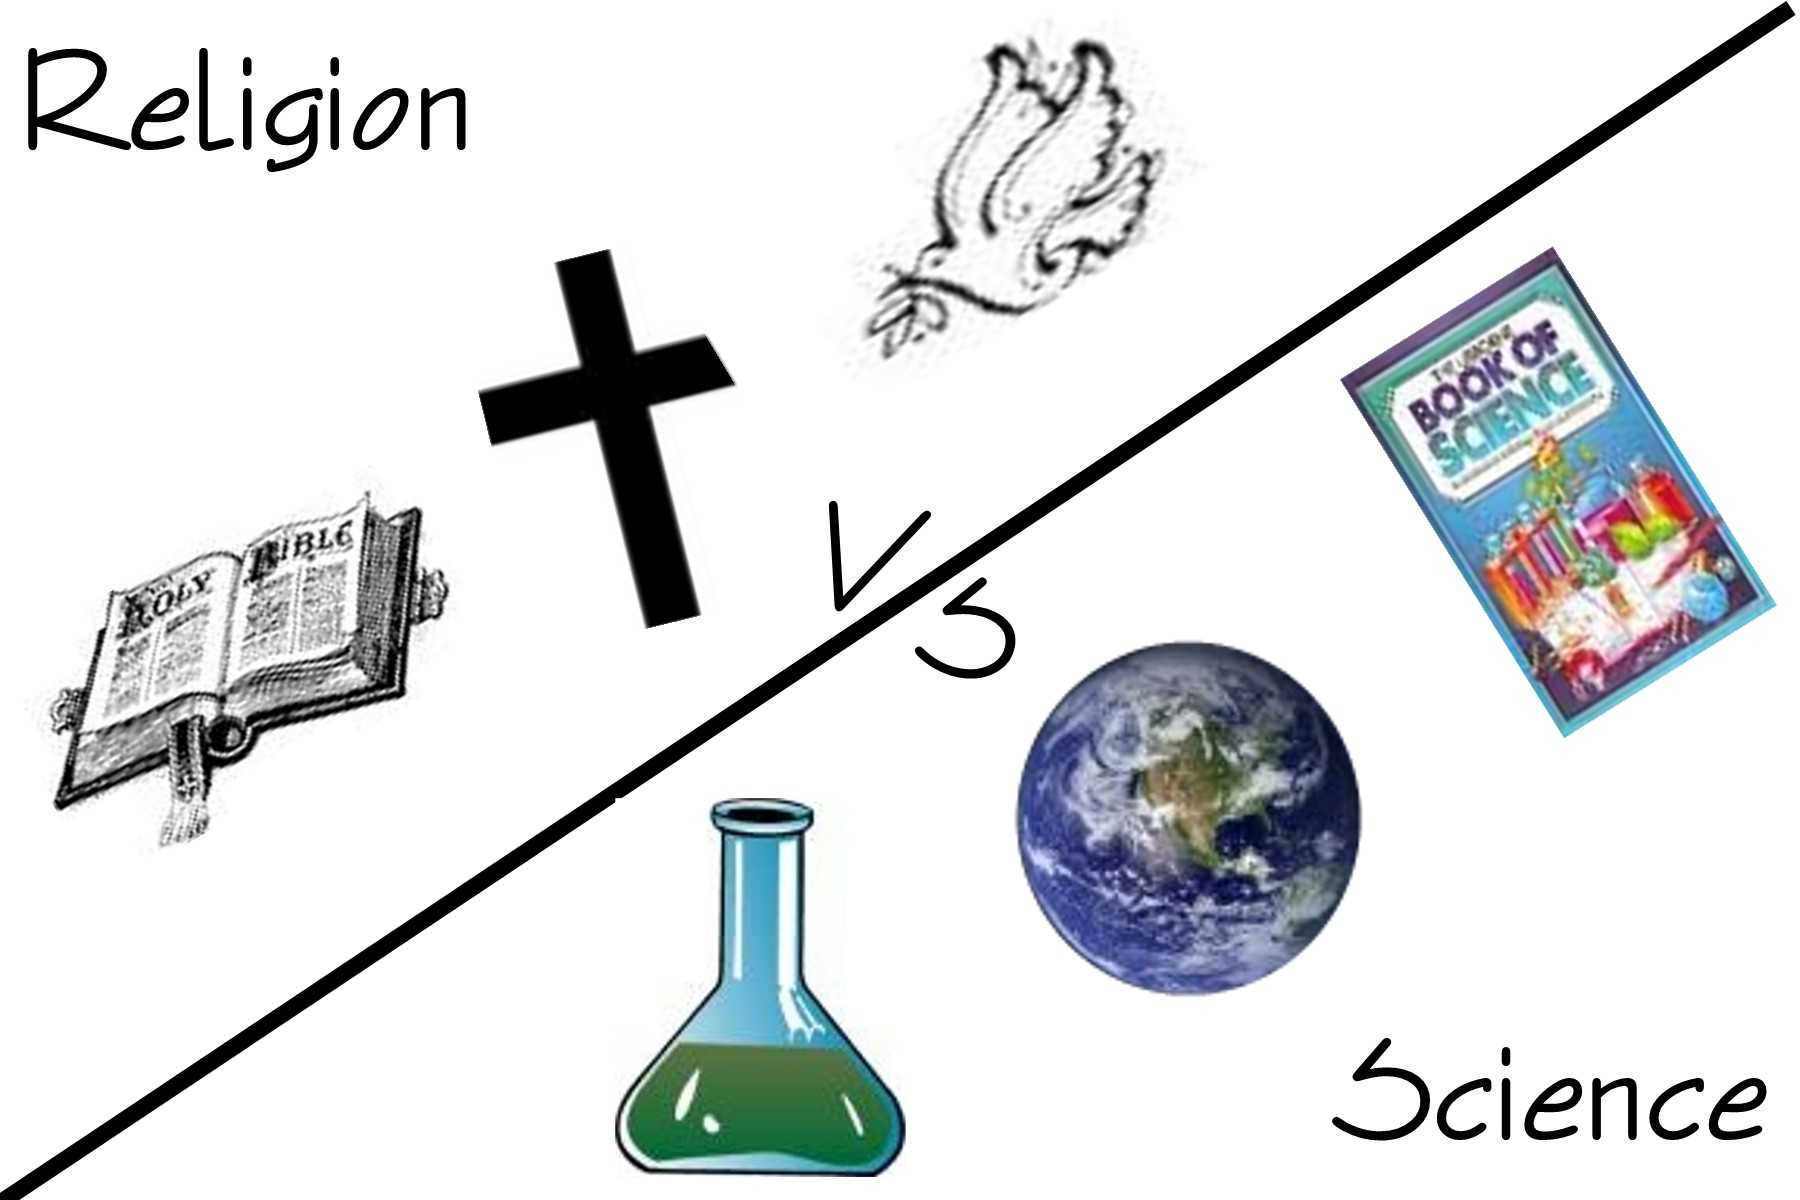 Words Essay On Science And Religion Free To Read Science And Religion